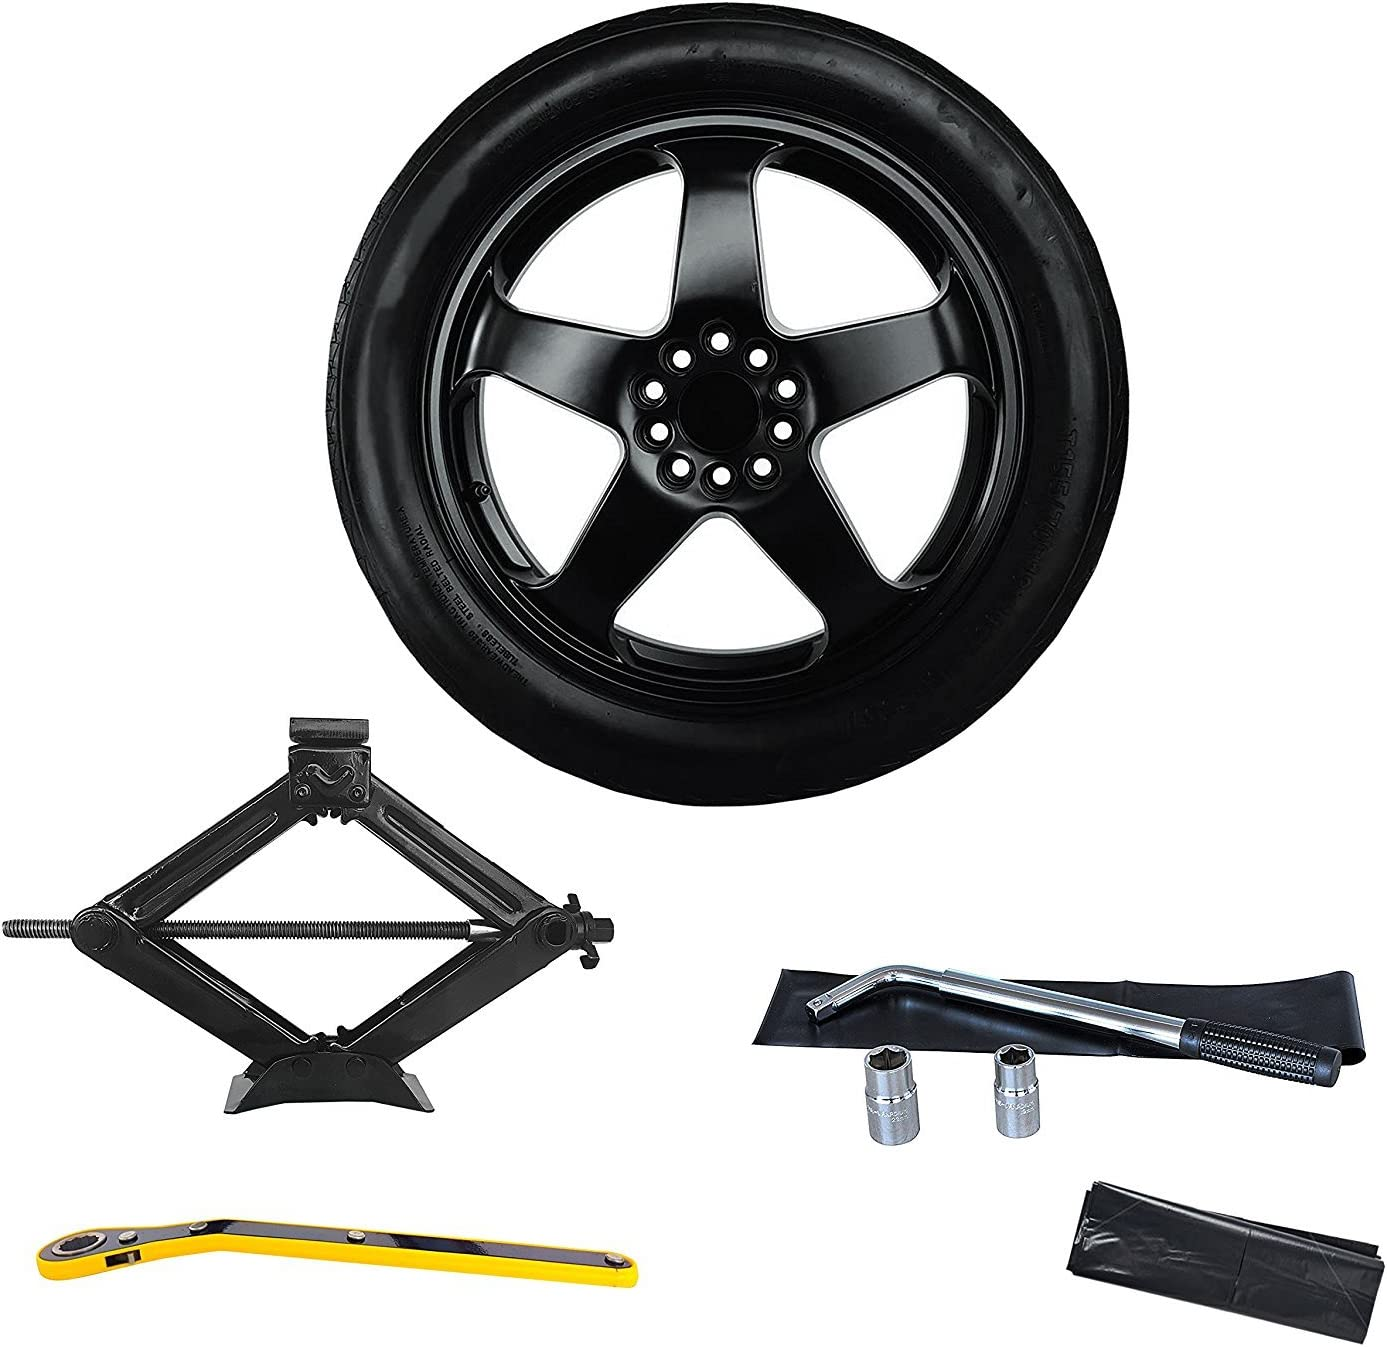 SPARE TIRE  WITH JACK KIT FITS 2013 2014 2015 2016-2020 CADILLAC ATS 18 INCH